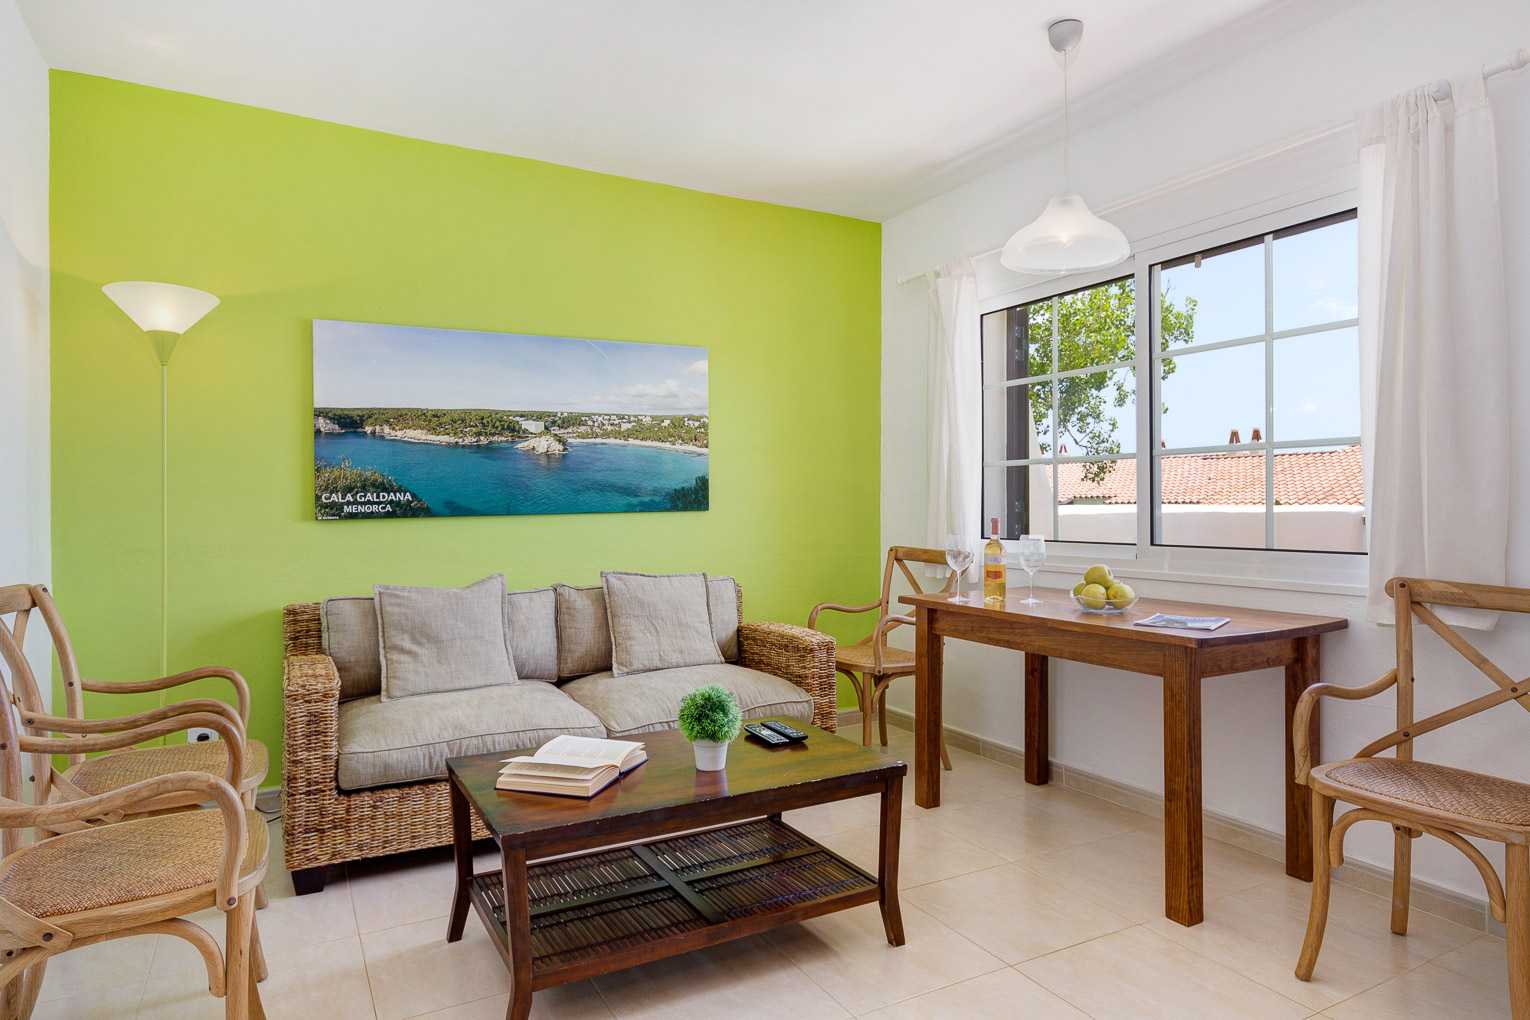 Son Bou Playa Apartments (2 bedroom) Picture 11